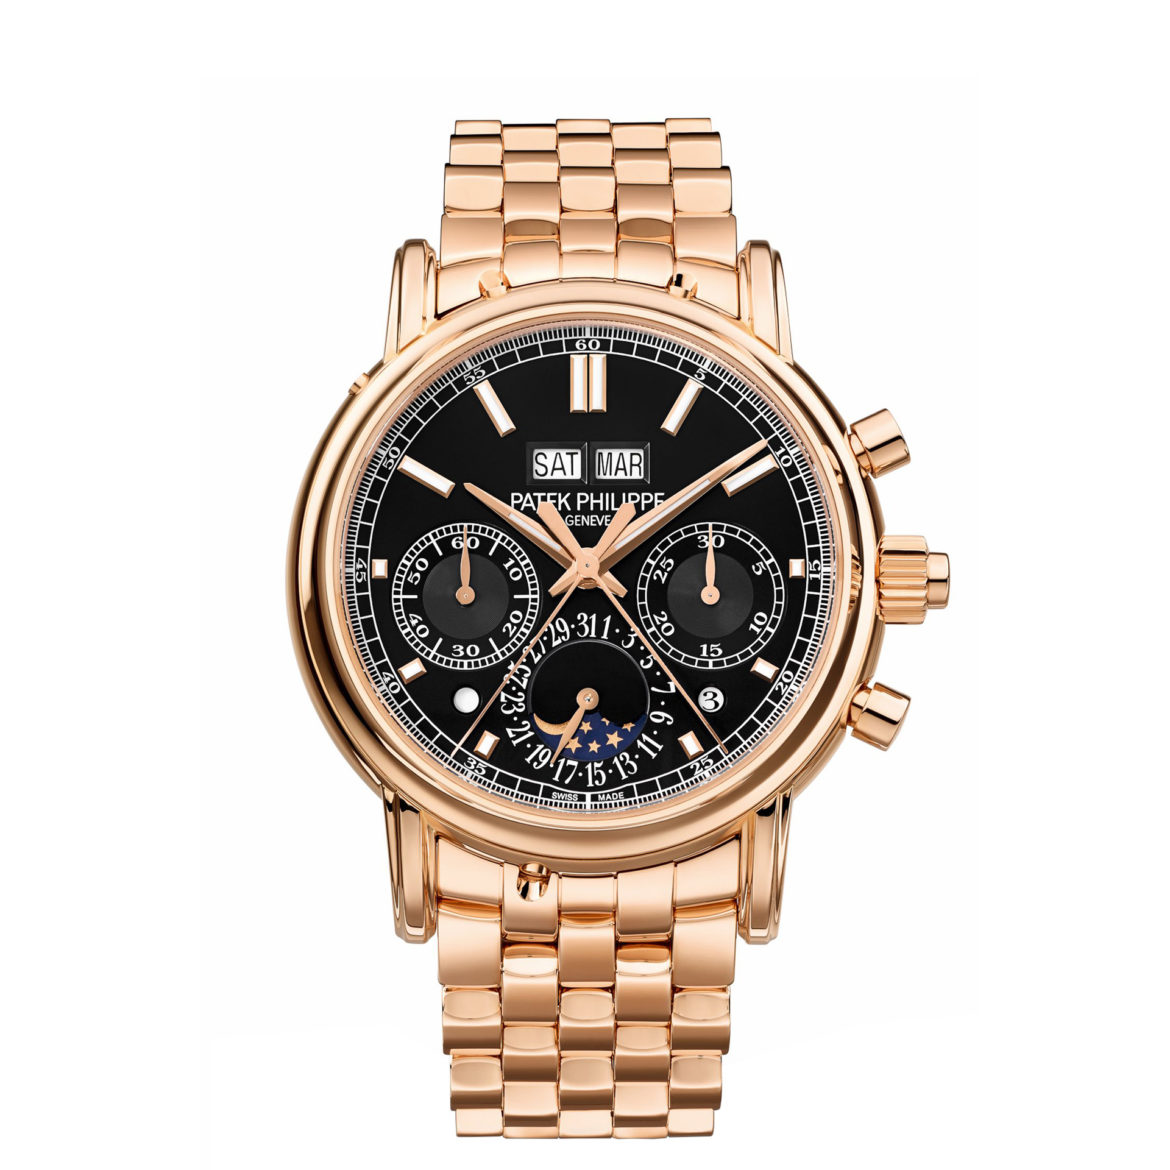 Patek Philippe Grand Complications Ref. 5204/1R-001